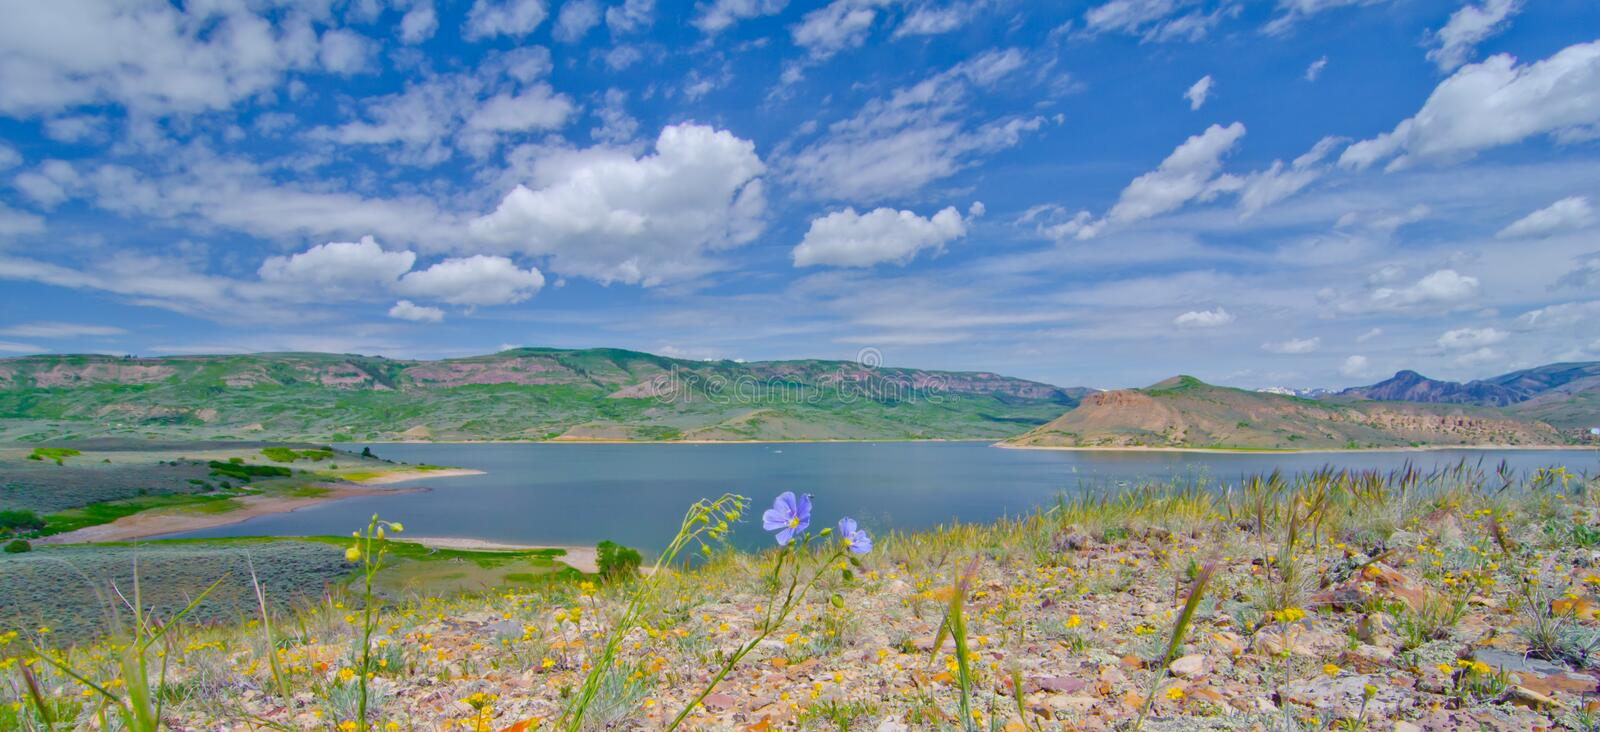 Blue Mesa Reservoir in the Curecanti National Recreation Area in Southern Colorado stock photography